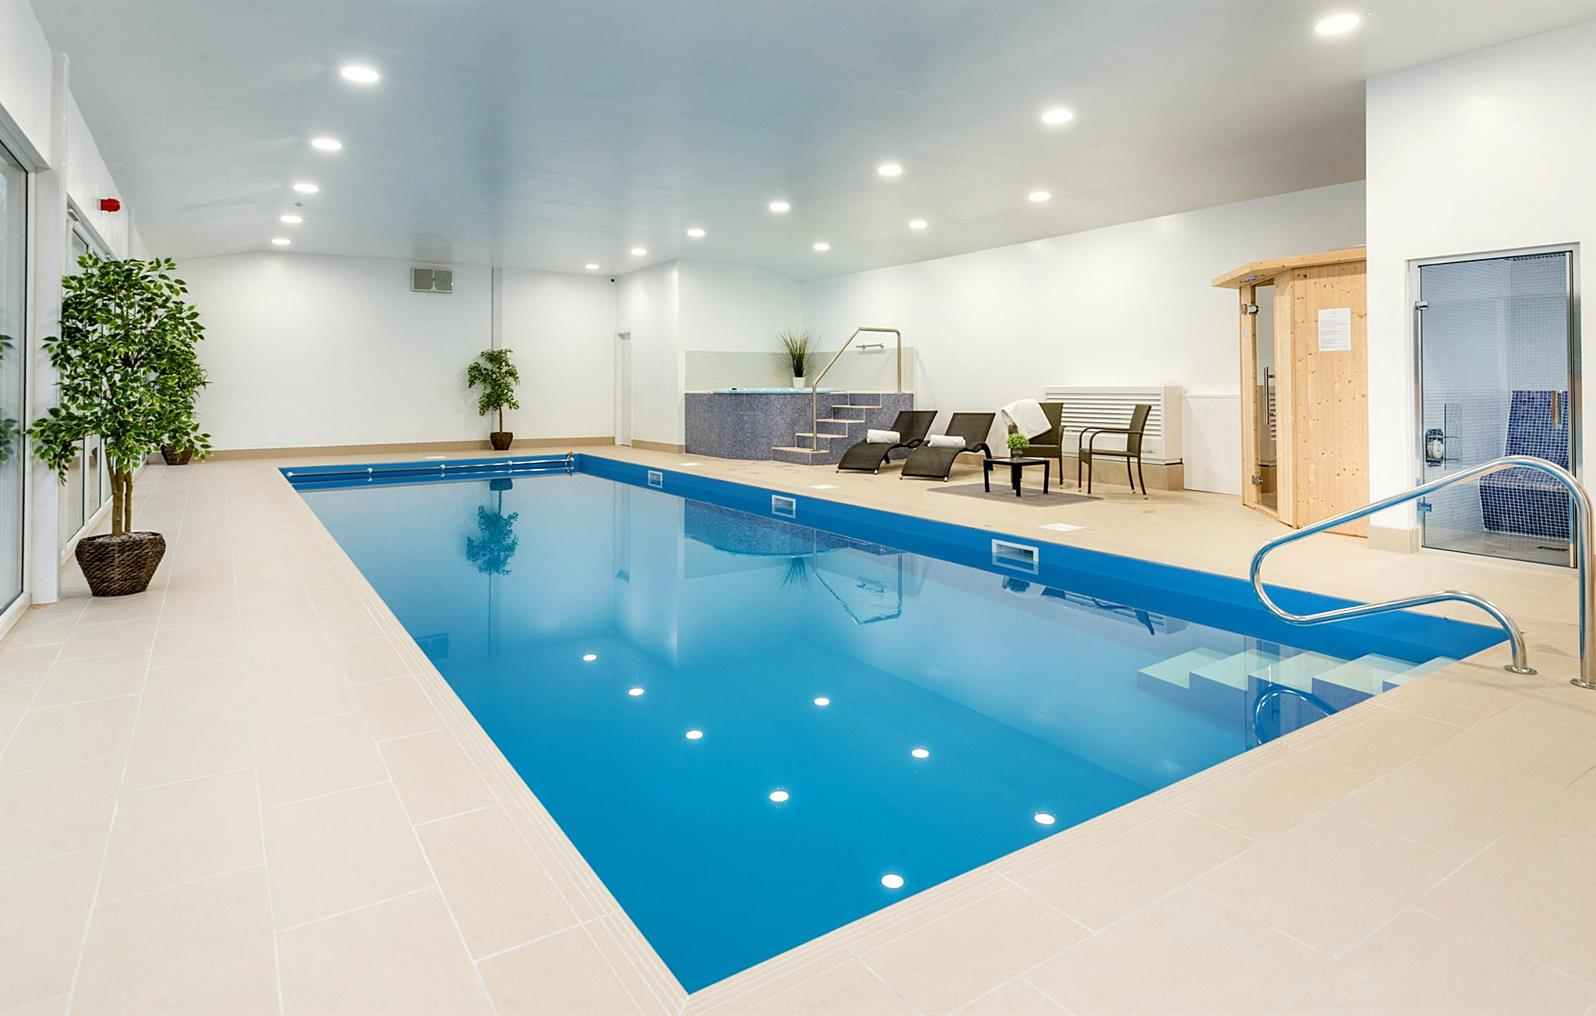 Indoor swimming pool, Sauna, Steam,